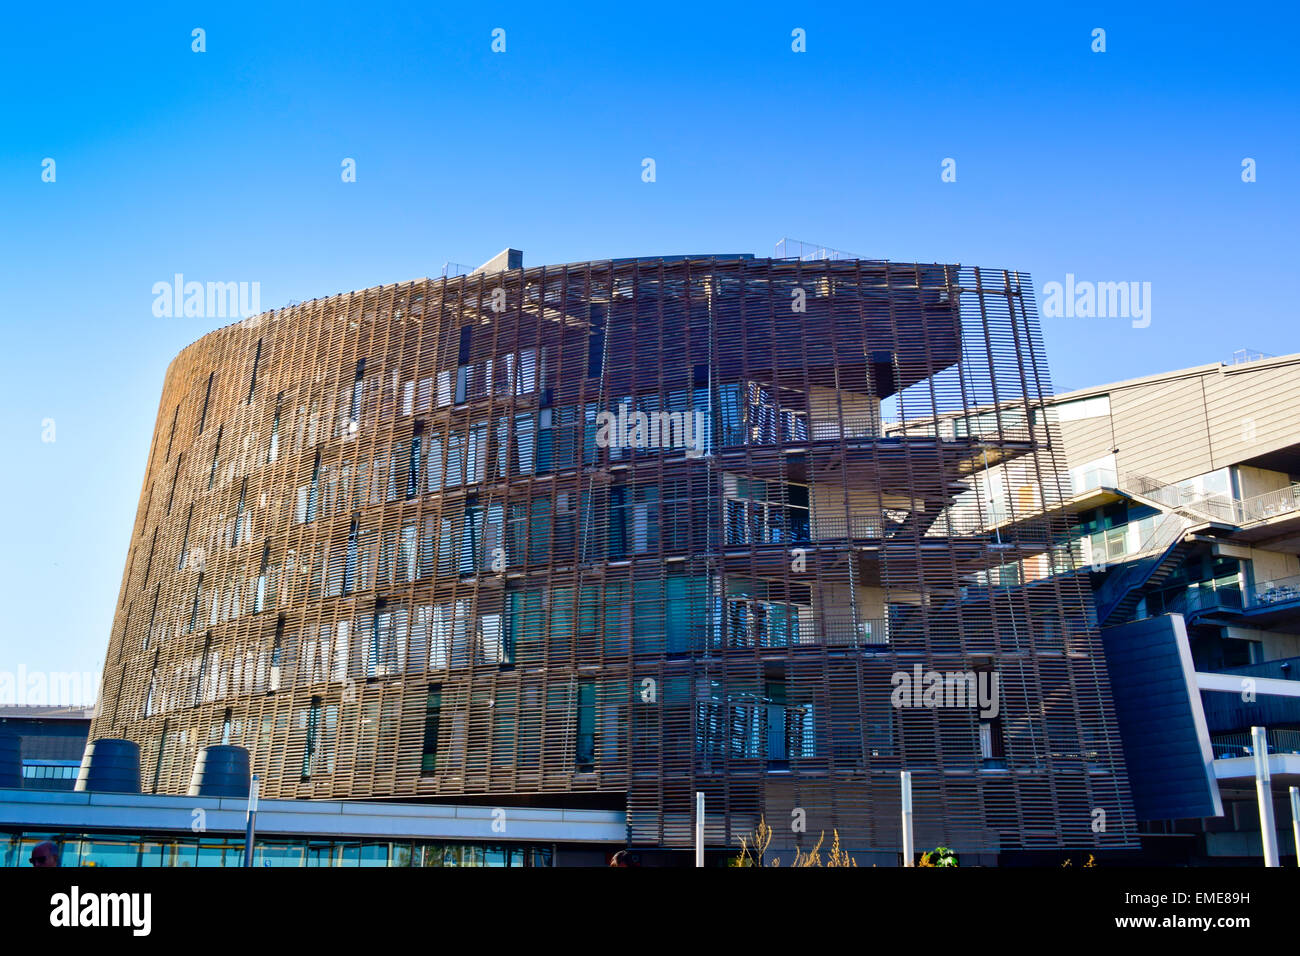 Biomedical Research Park building by Manel Brullet and Albert Pineda. Vila Olímpica, Barcelona, Catalonia, - Stock Image